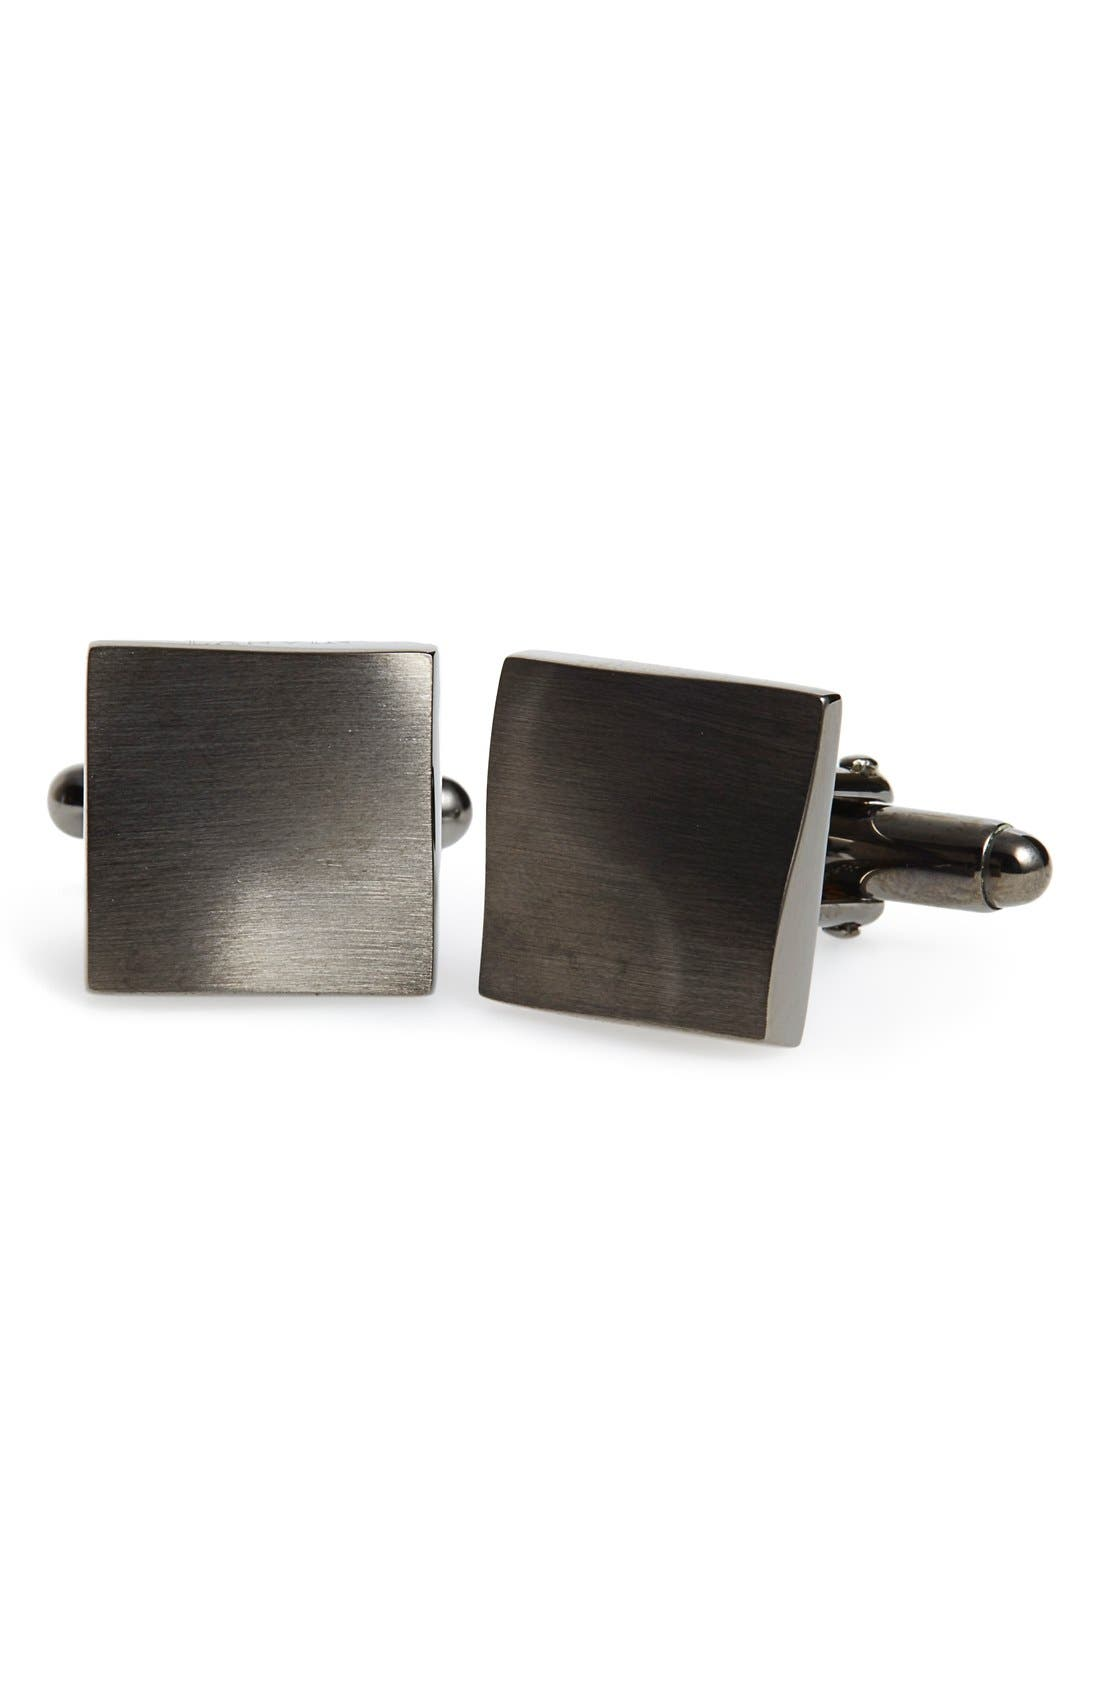 Main Image - Lanvin 'Twisted Plaque' Square Cuff Links